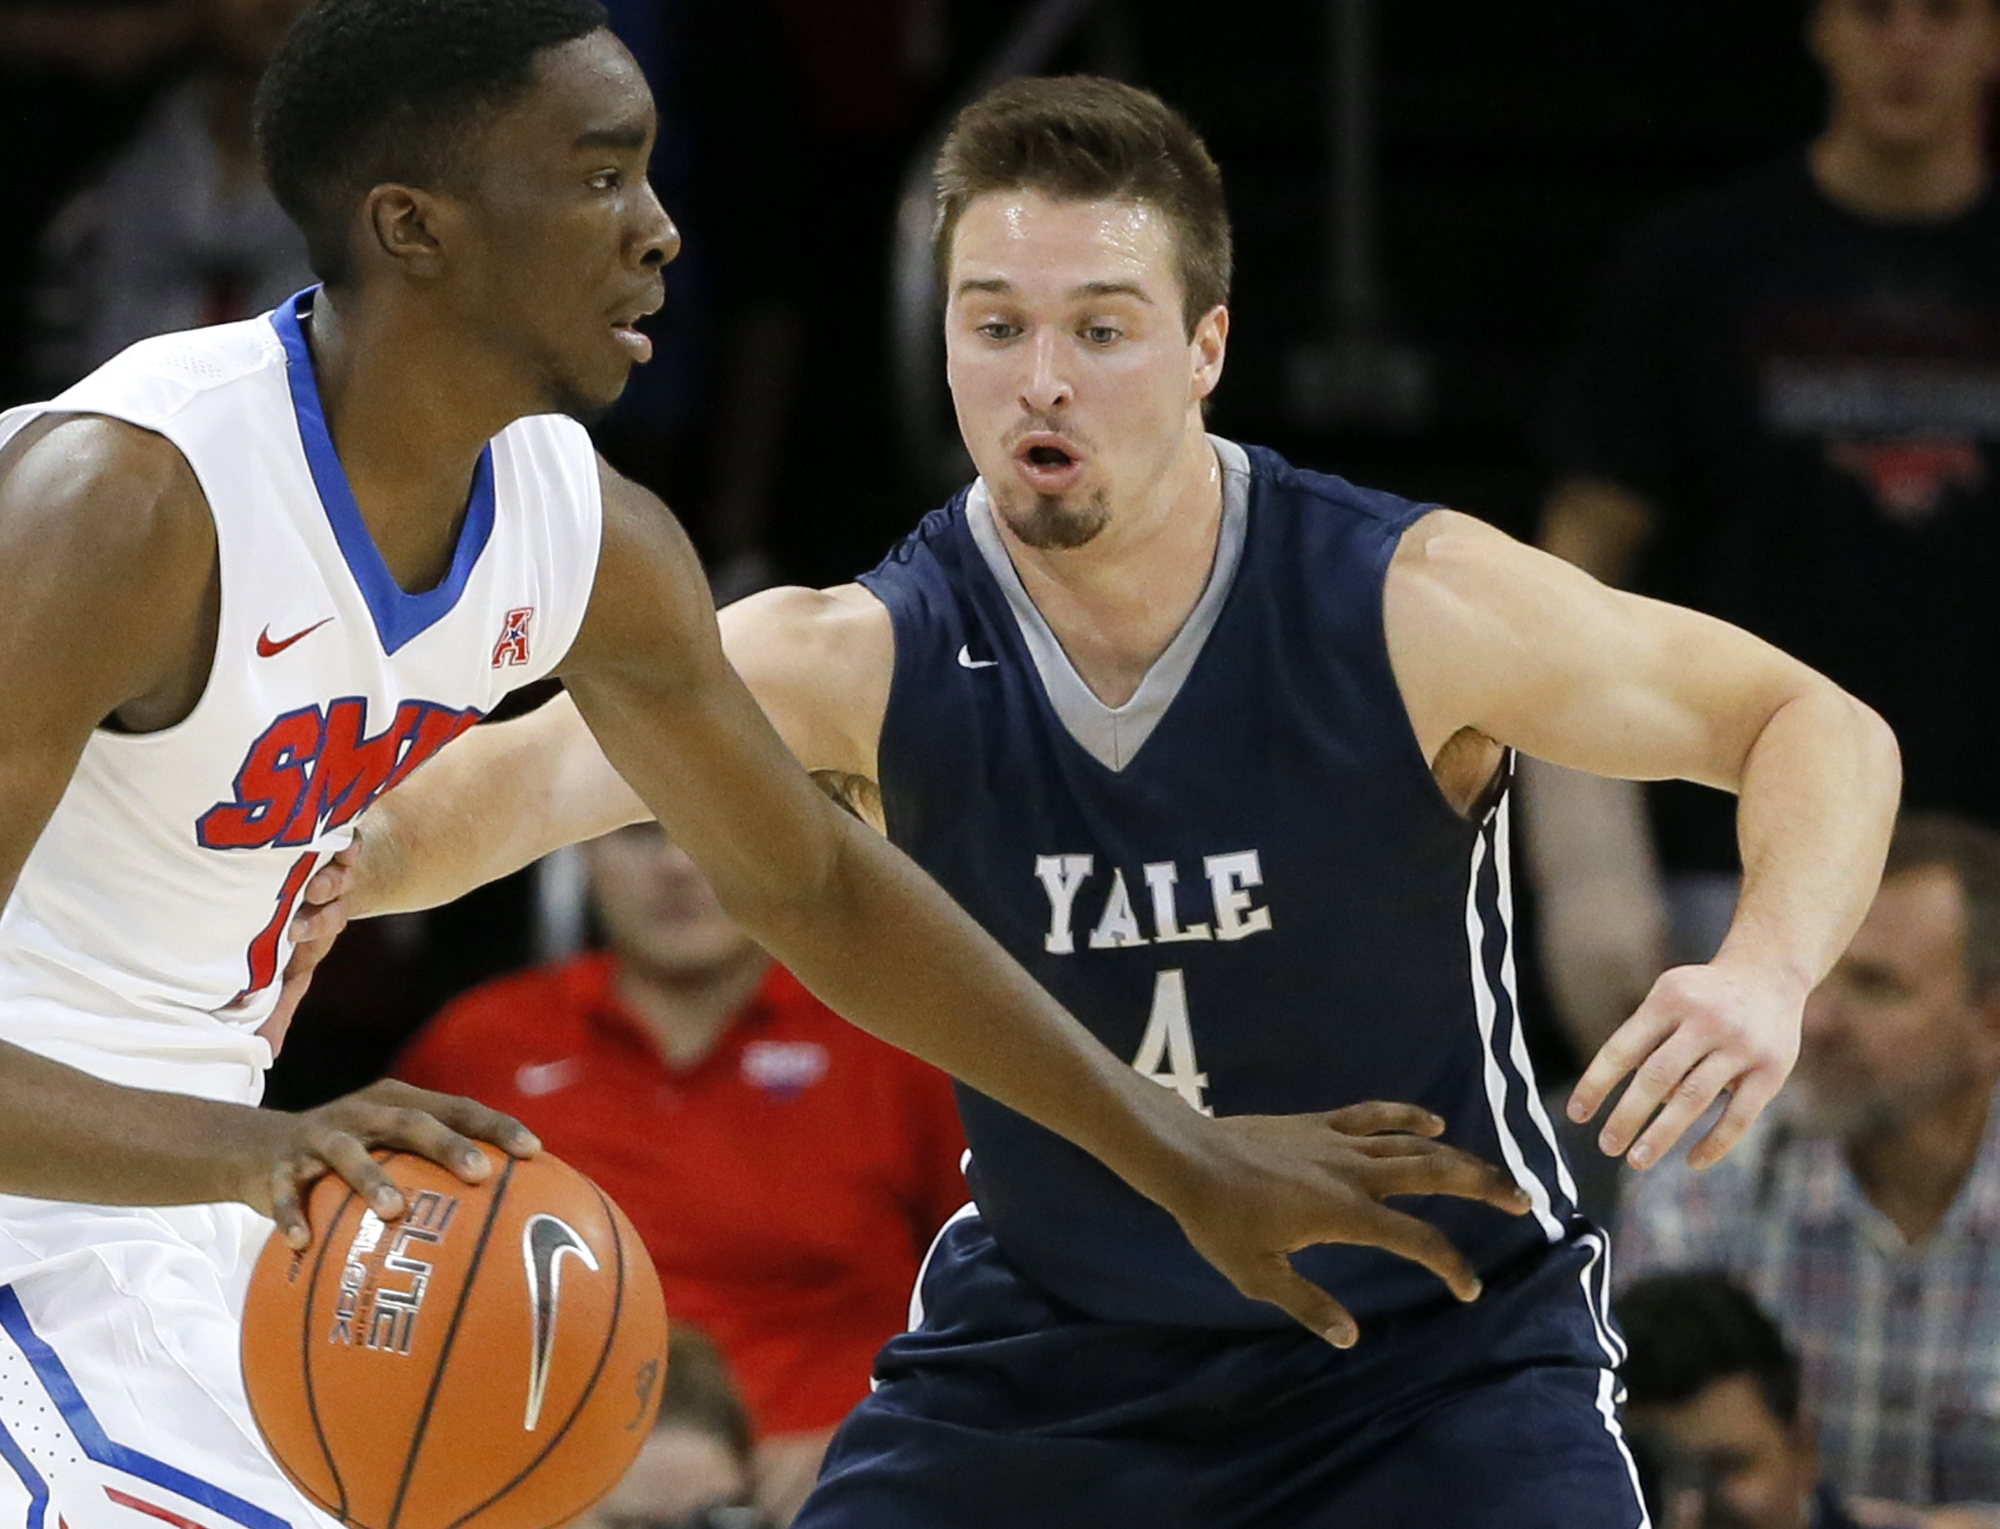 In this Nov. 22, 2015, photo, Yale's Jack Montague, right, defends against SMU guard Shake Milton during an NCAA college basketball game in Dallas. Yale announced on Feb. 24, 2016, that Montague was no longer on the team. Citing federal privacy law, Yale